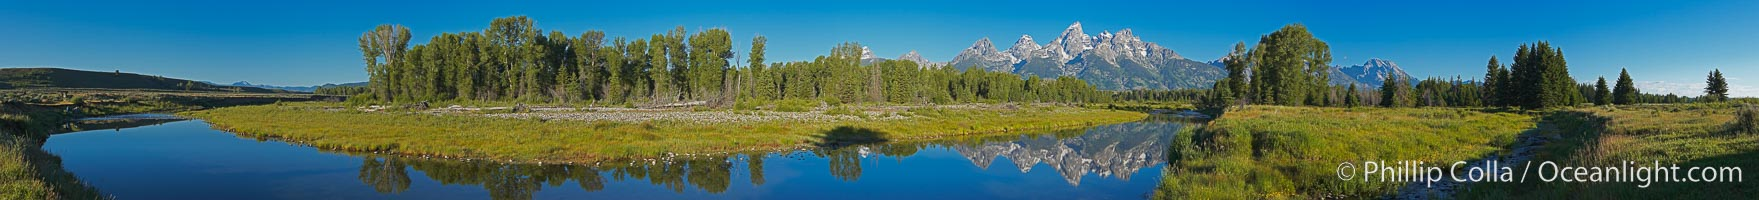 Panorama of the Teton Range reflected in the still waters of Schwabacher Landing, a sidewater of the Snake River, Grand Teton National Park, Wyoming